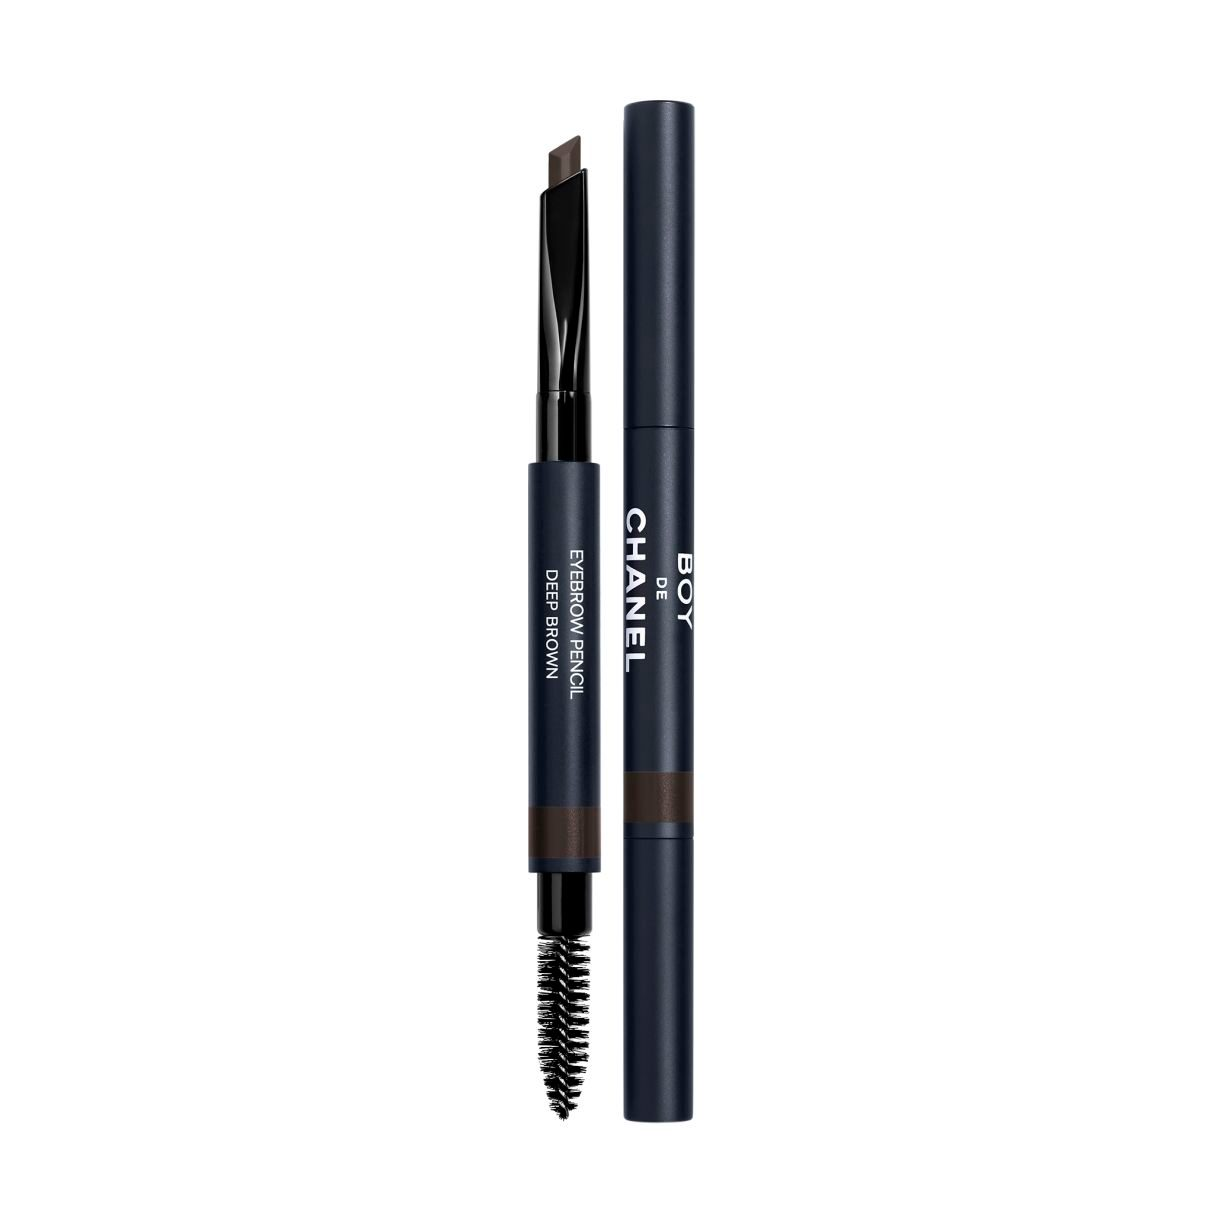 BOY DE CHANEL LE STYLO SOURCILS STYLO SOURCILS WATERPROOF ET LONGUE TENUE